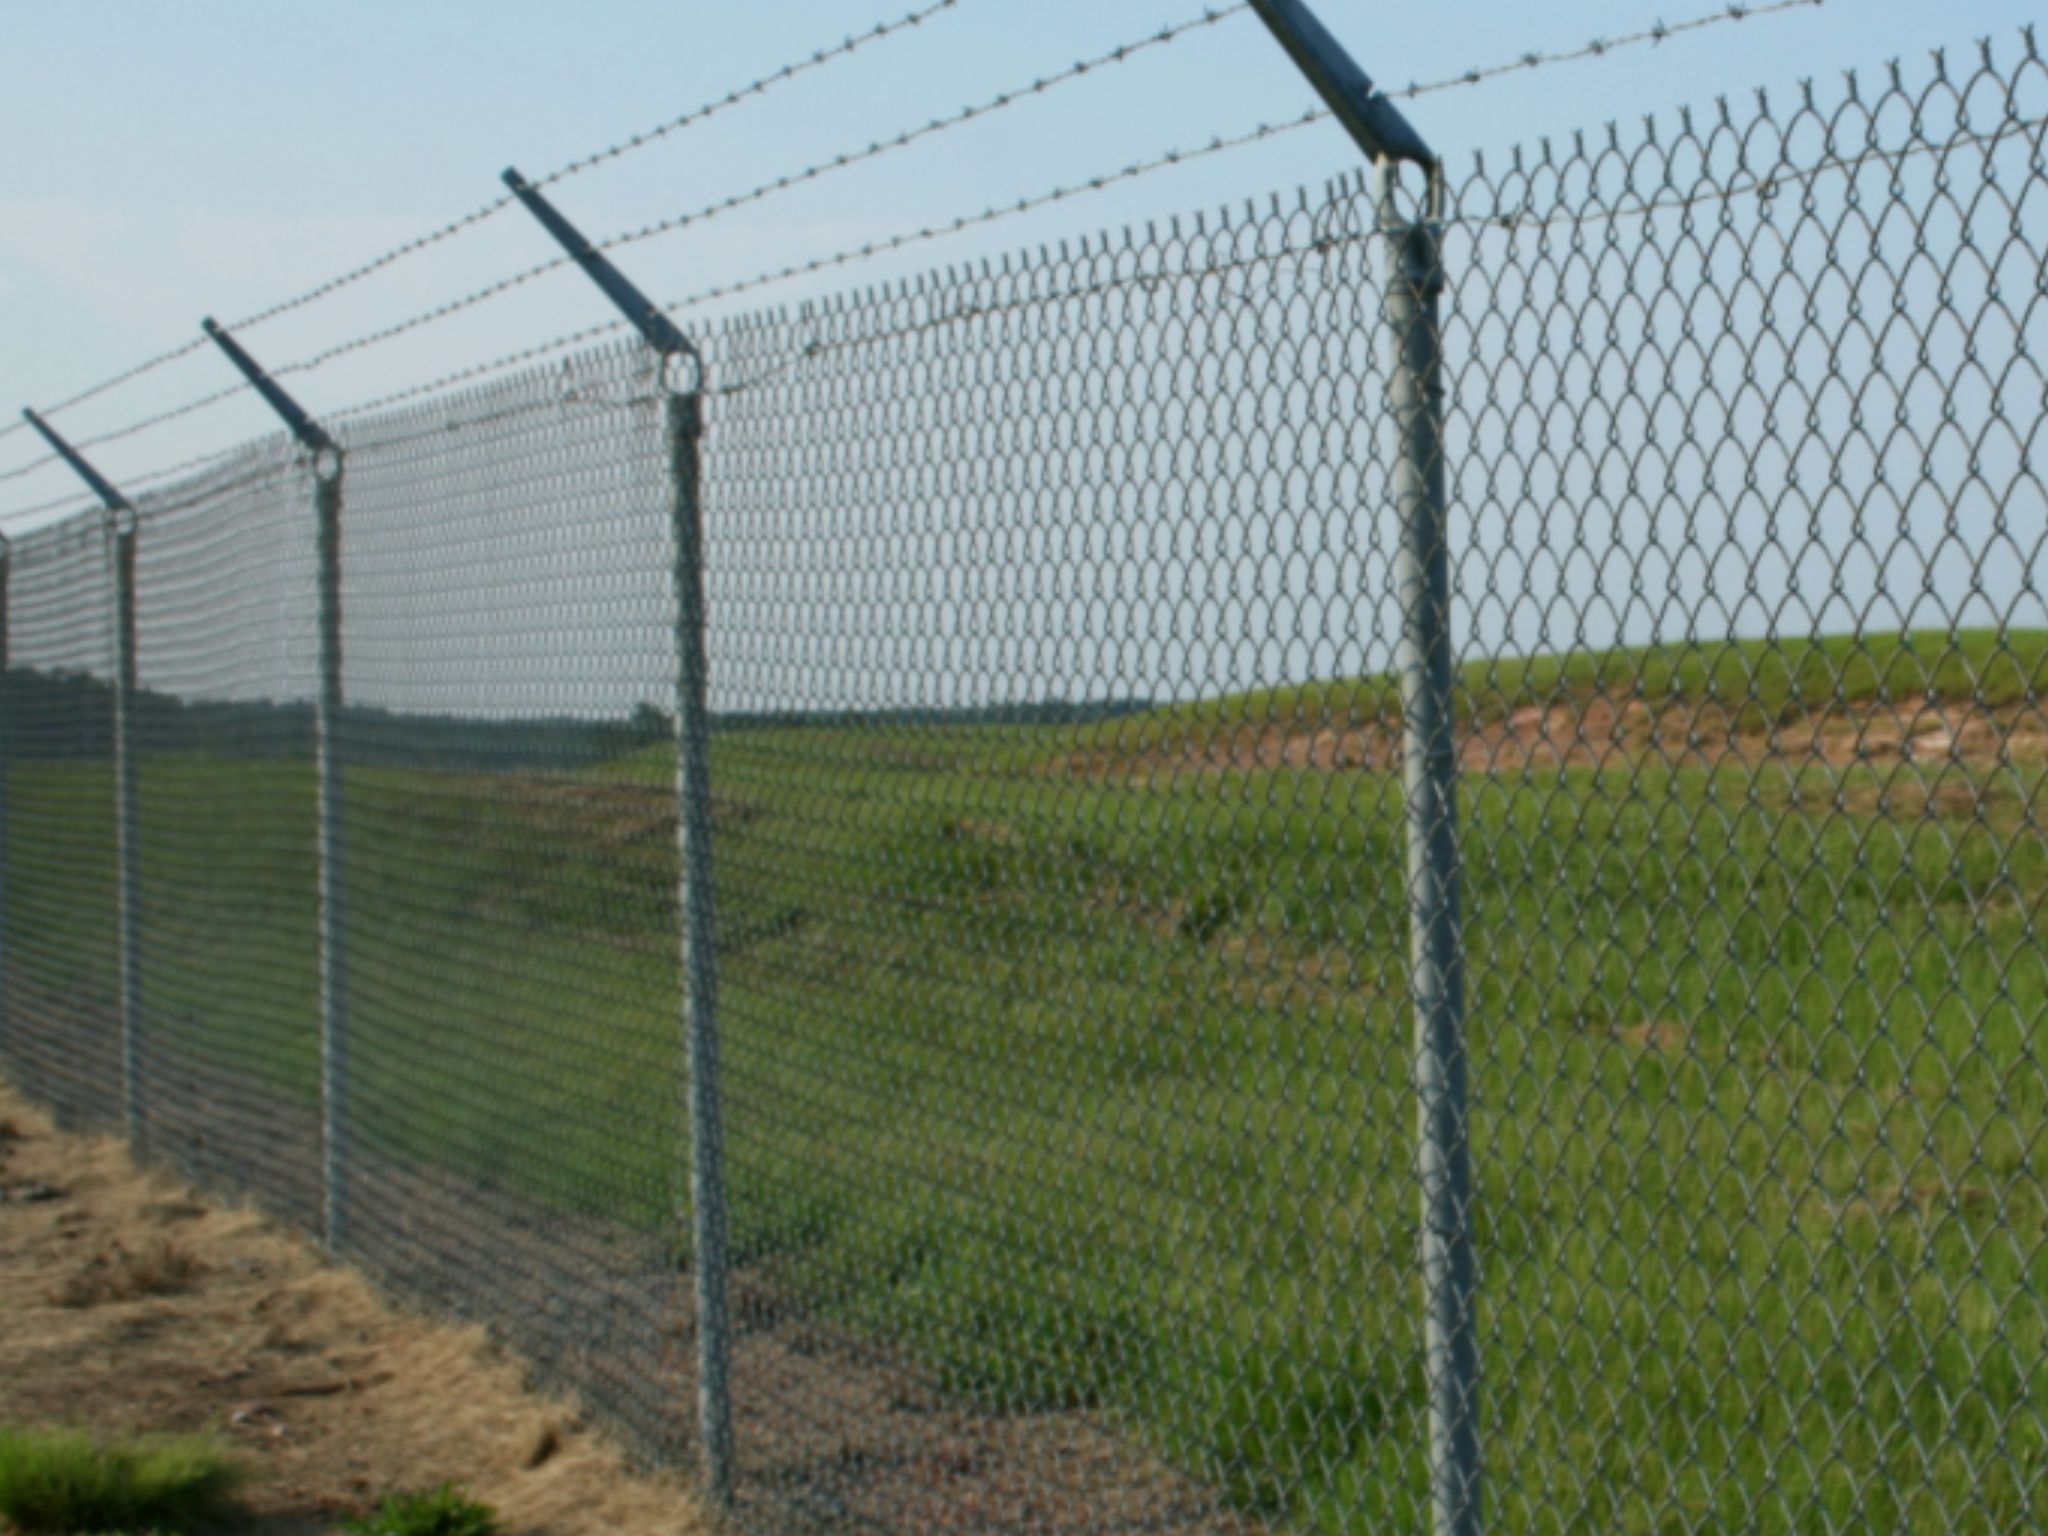 The Fence Is Well Guarded By Dauntless Workers, And Nothing